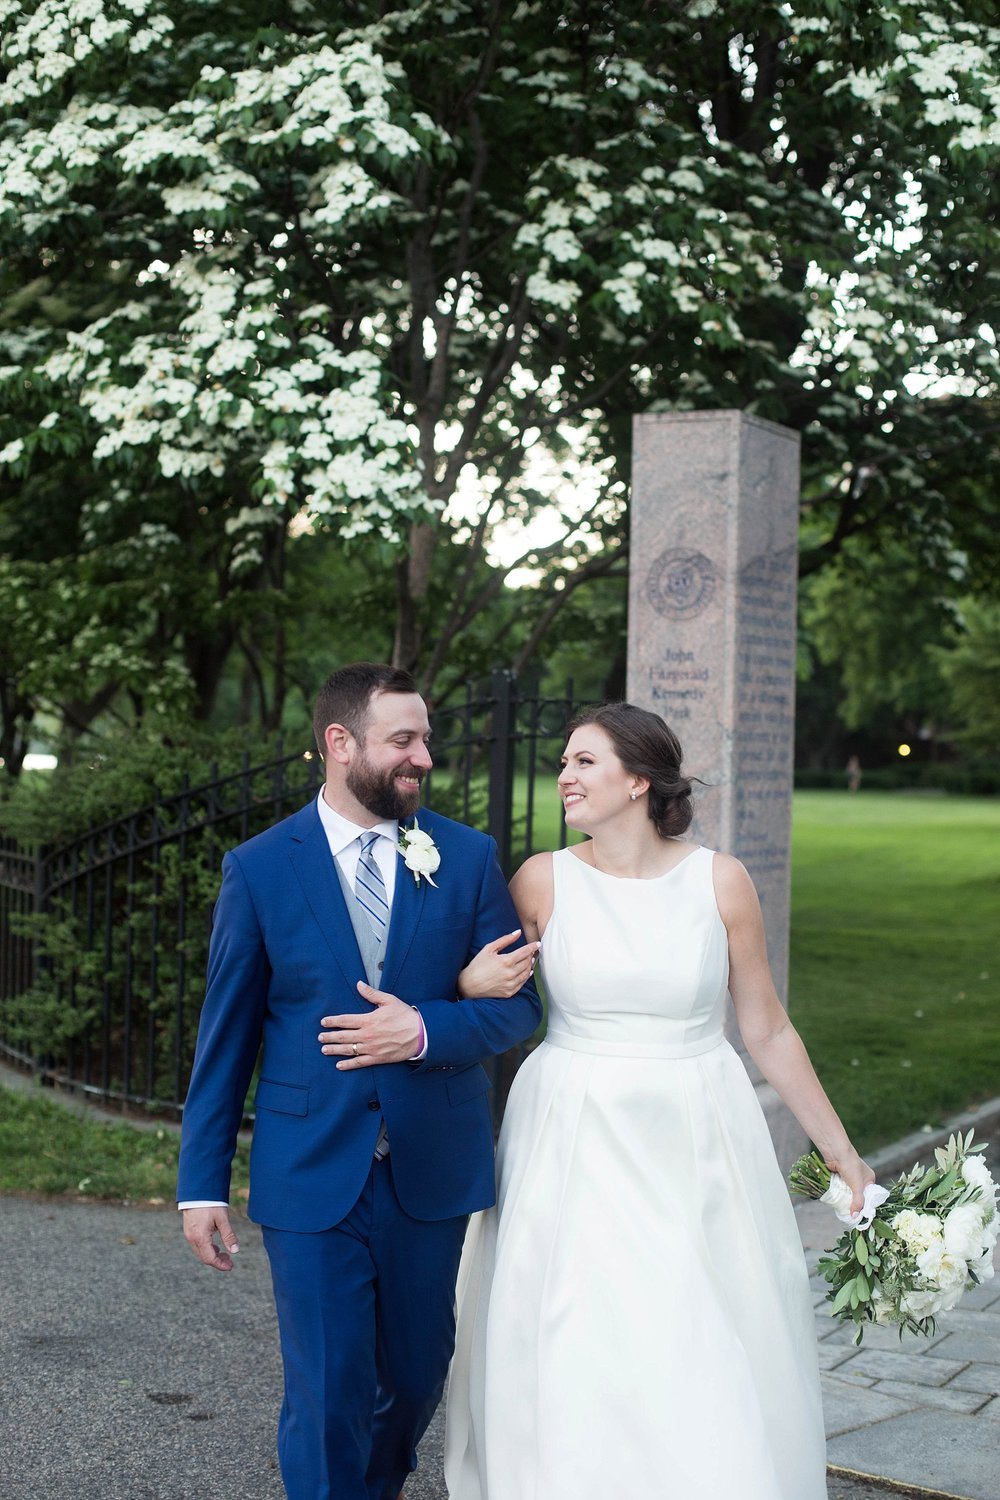 jfk park boston wedding